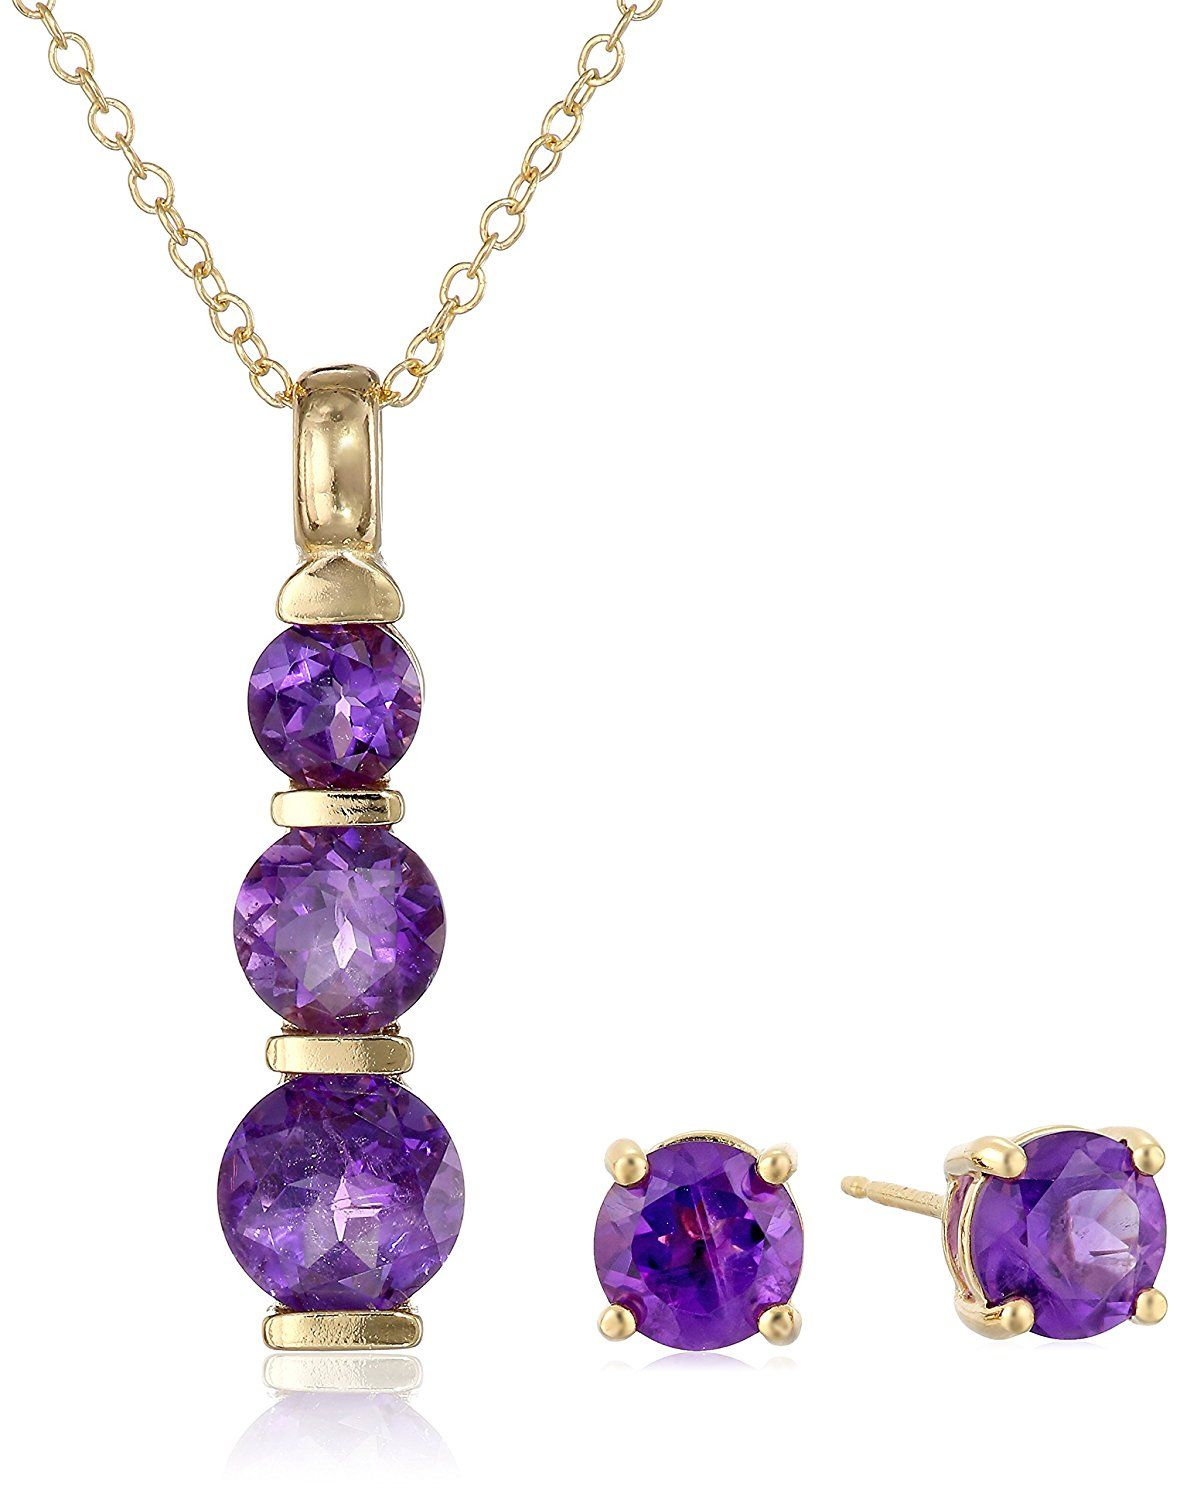 18k yellow gold plated sterling silver gemstone journey pendant 18k yellow gold plated sterling silver gemstone journey pendant necklace and stud earrings set aloadofball Image collections